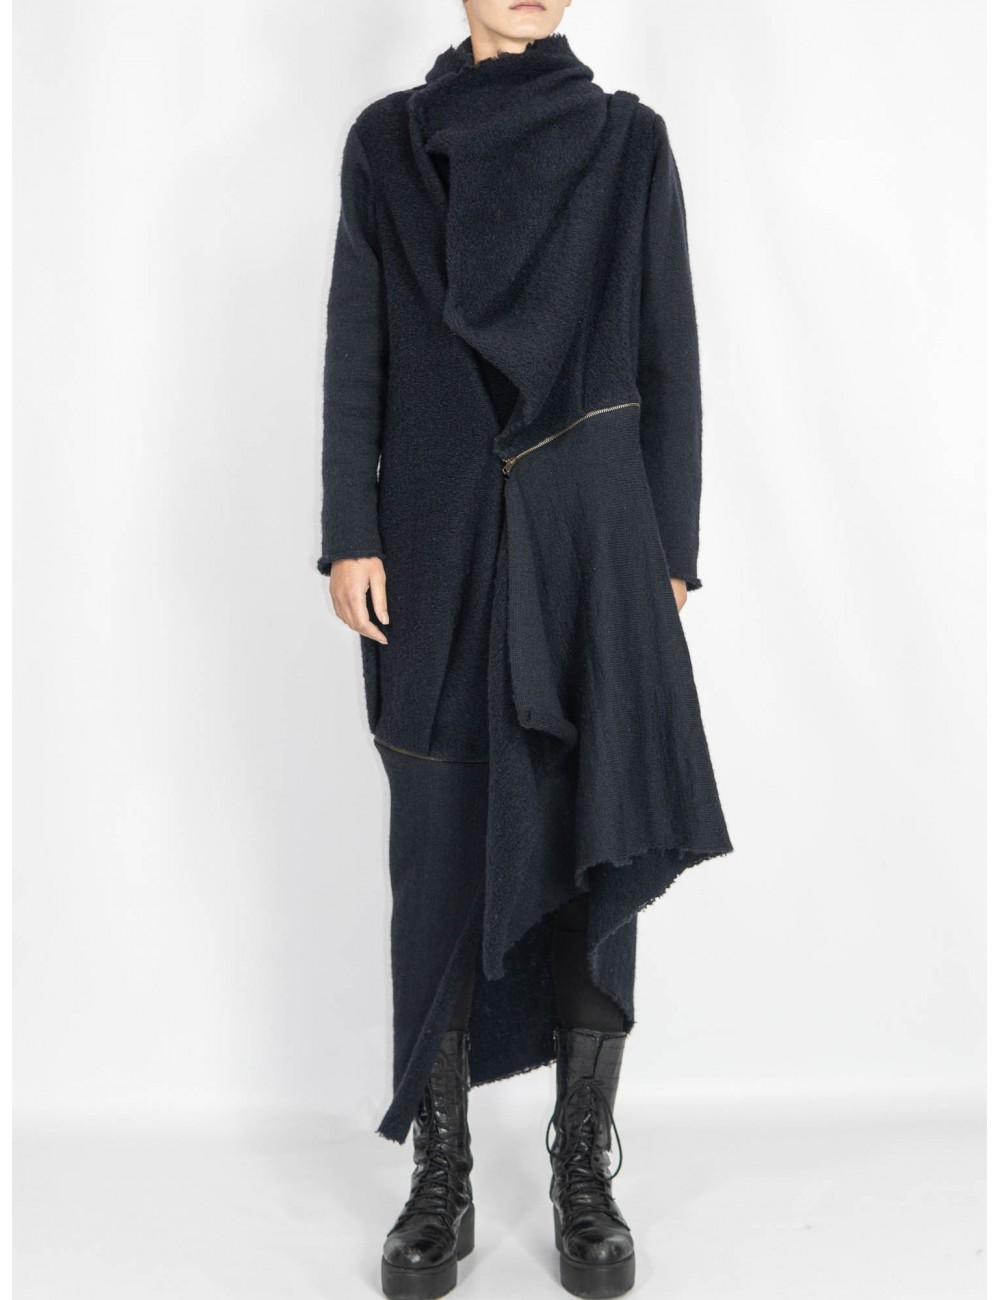 Ethical wool coat Chaotic